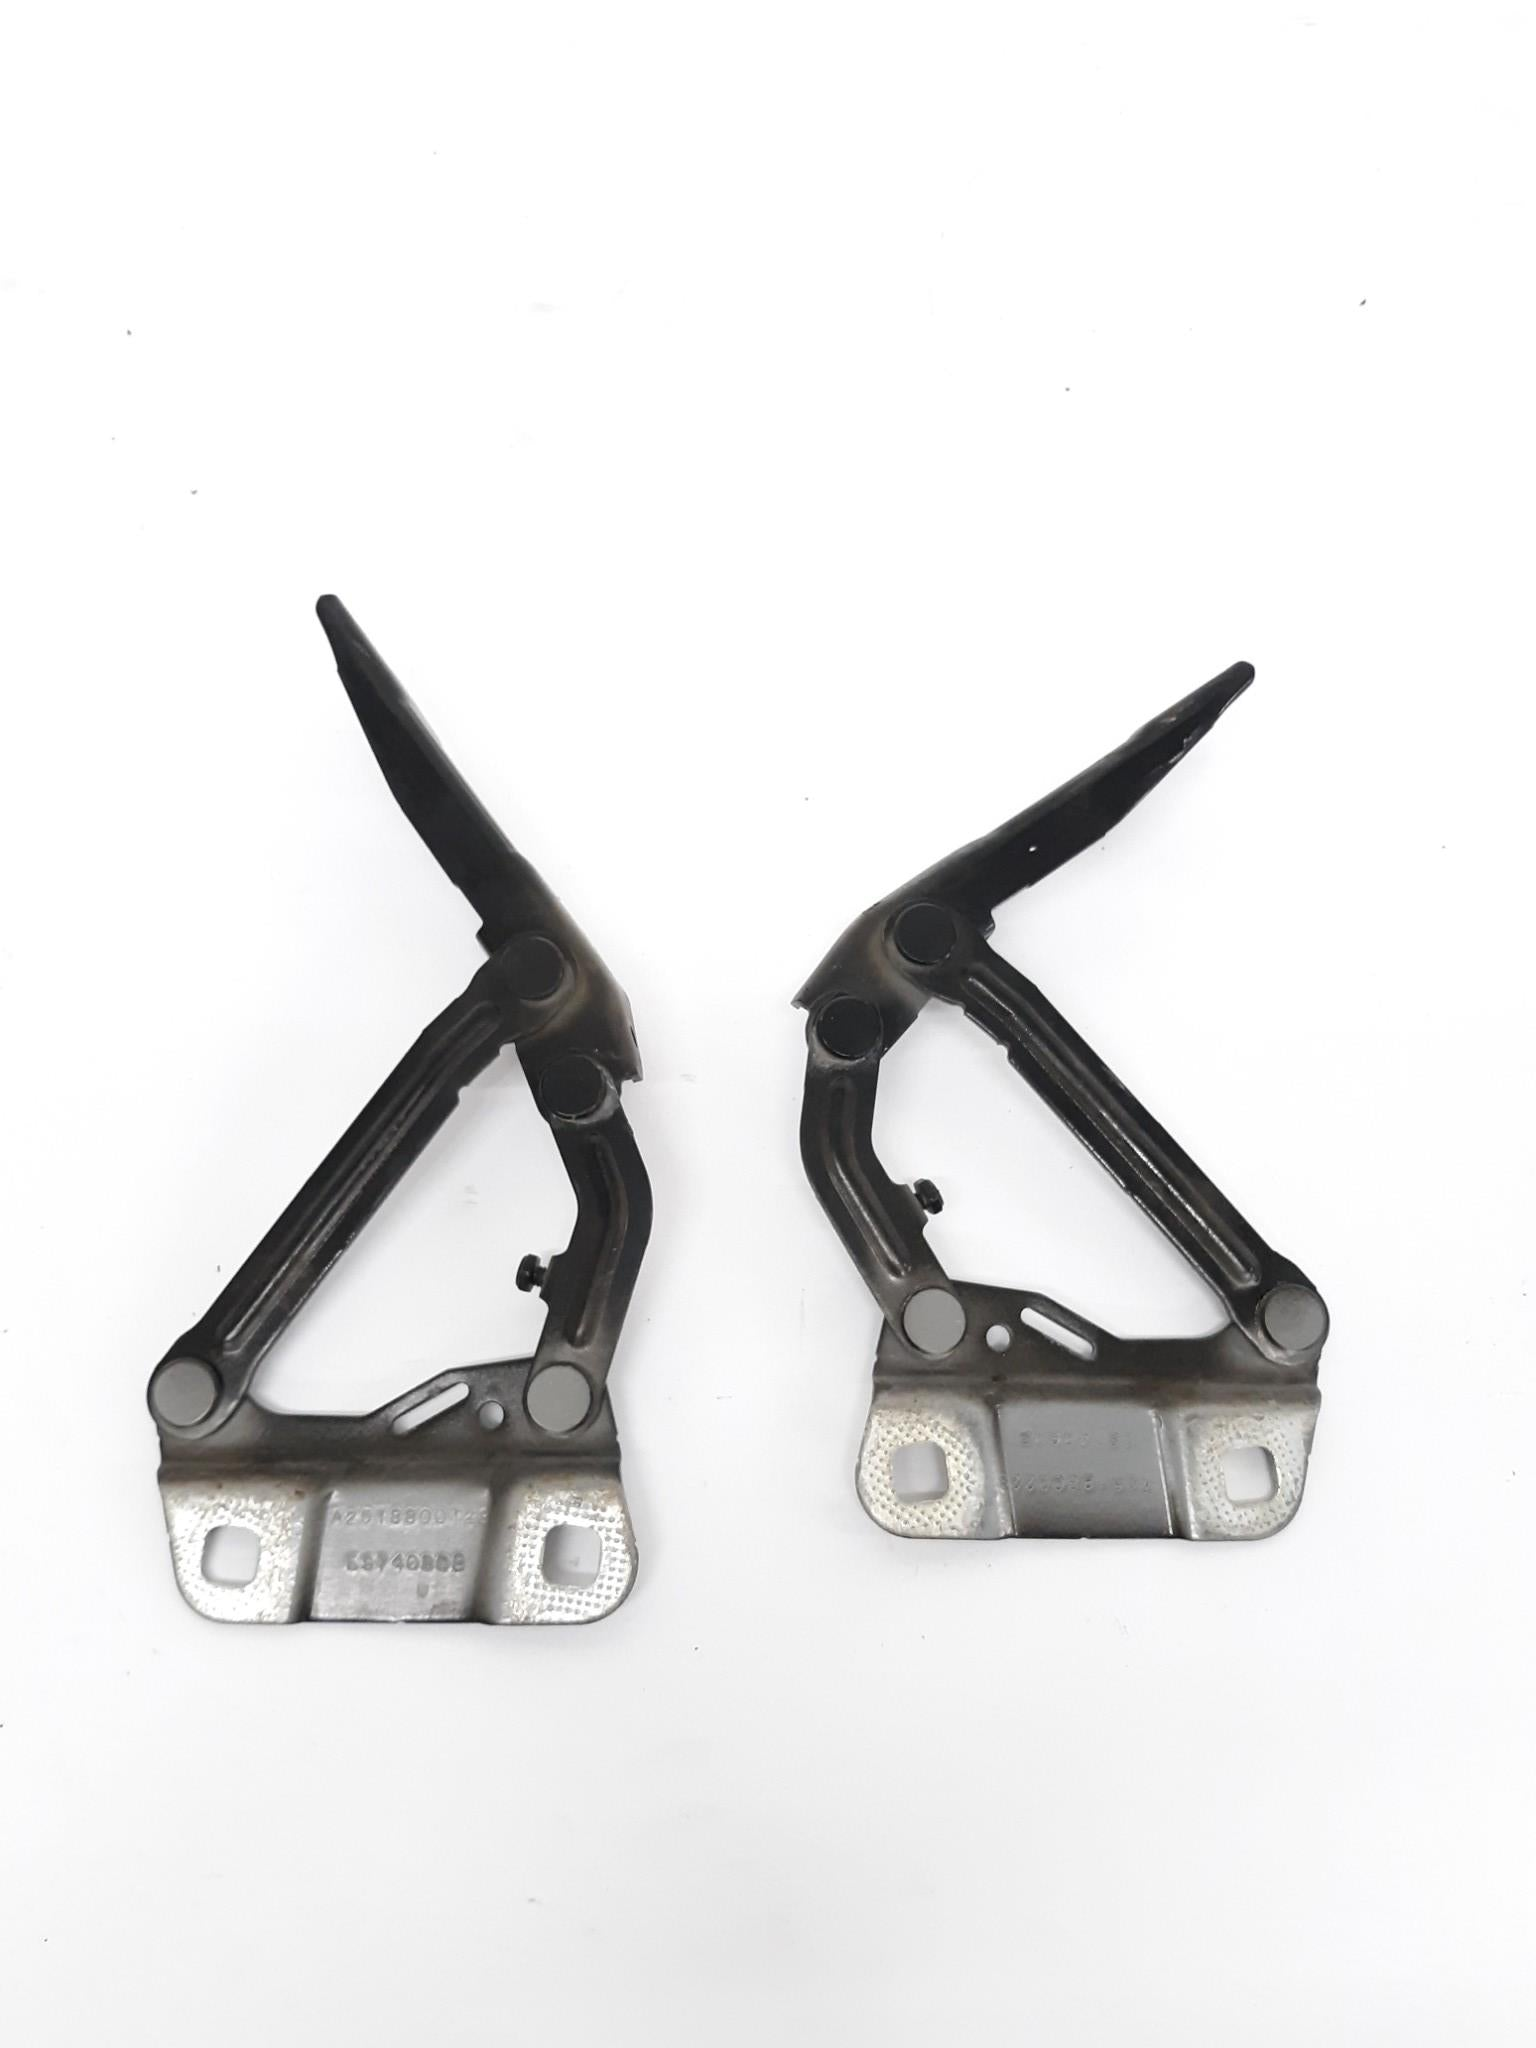 06-11 MERCEDES OEM W164 ML320 ML350 FRONT RIGHT AND LEFT HOOD HINGE BRACKETS - Click Receive Auto Parts